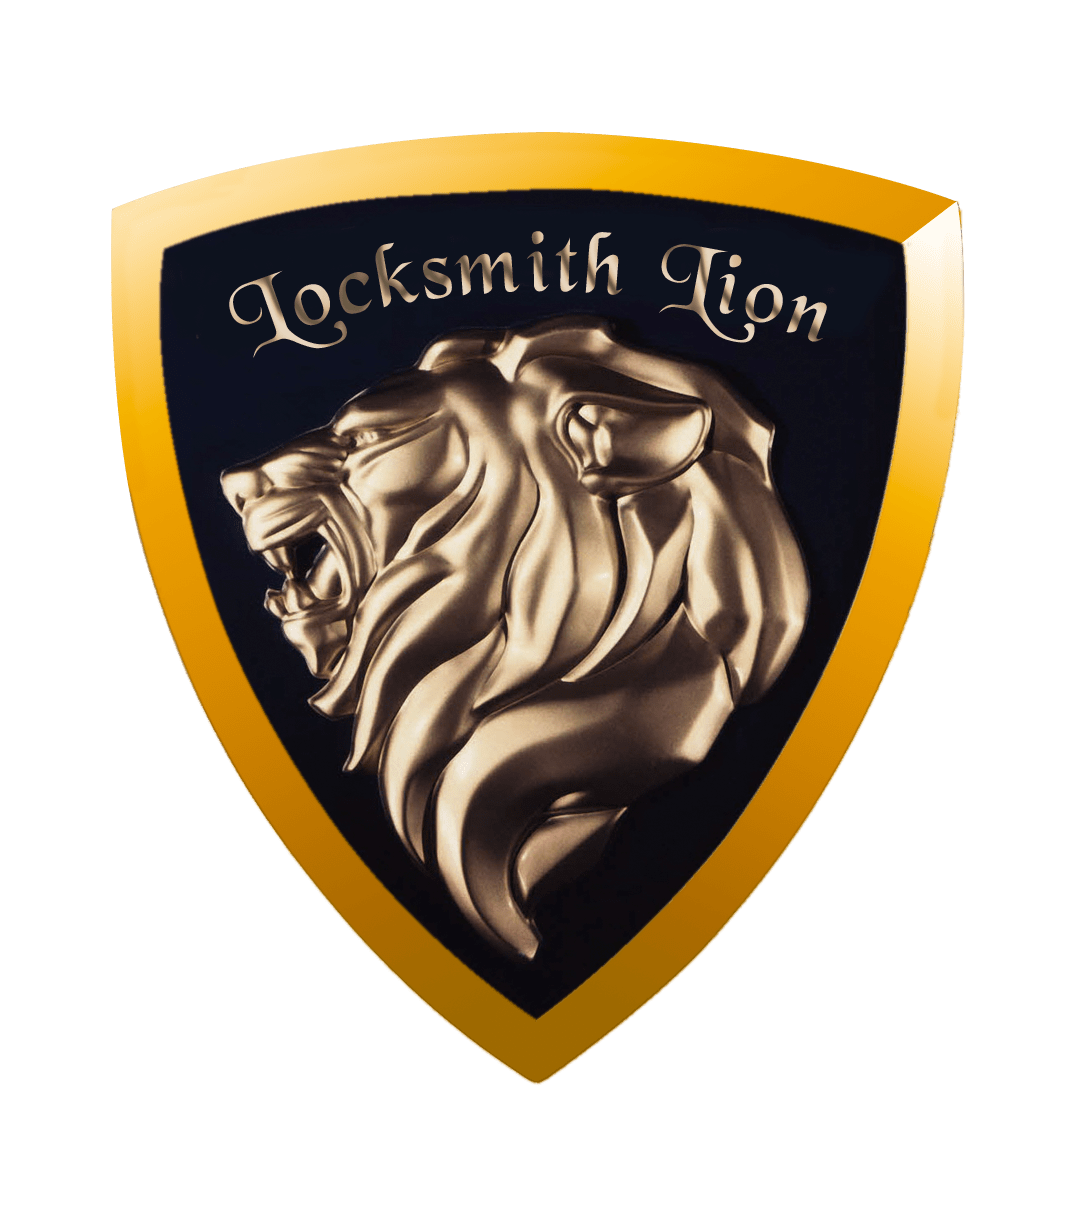 About Locksmith Lion